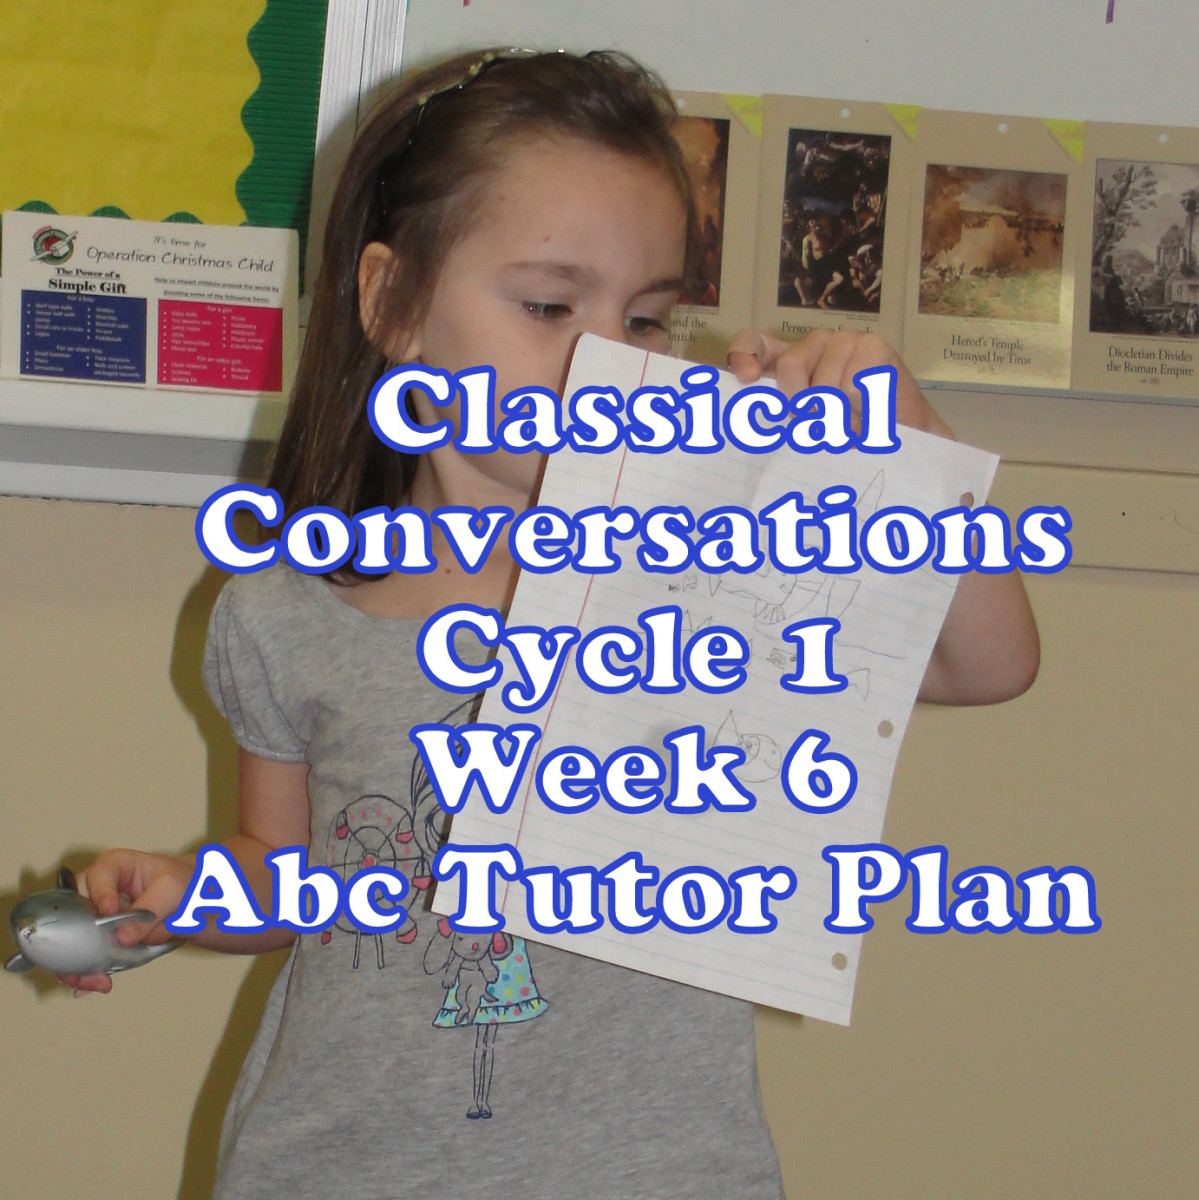 Classical Conversations Cycle 1 Week 6 Abc Tutor Plan - Presentations